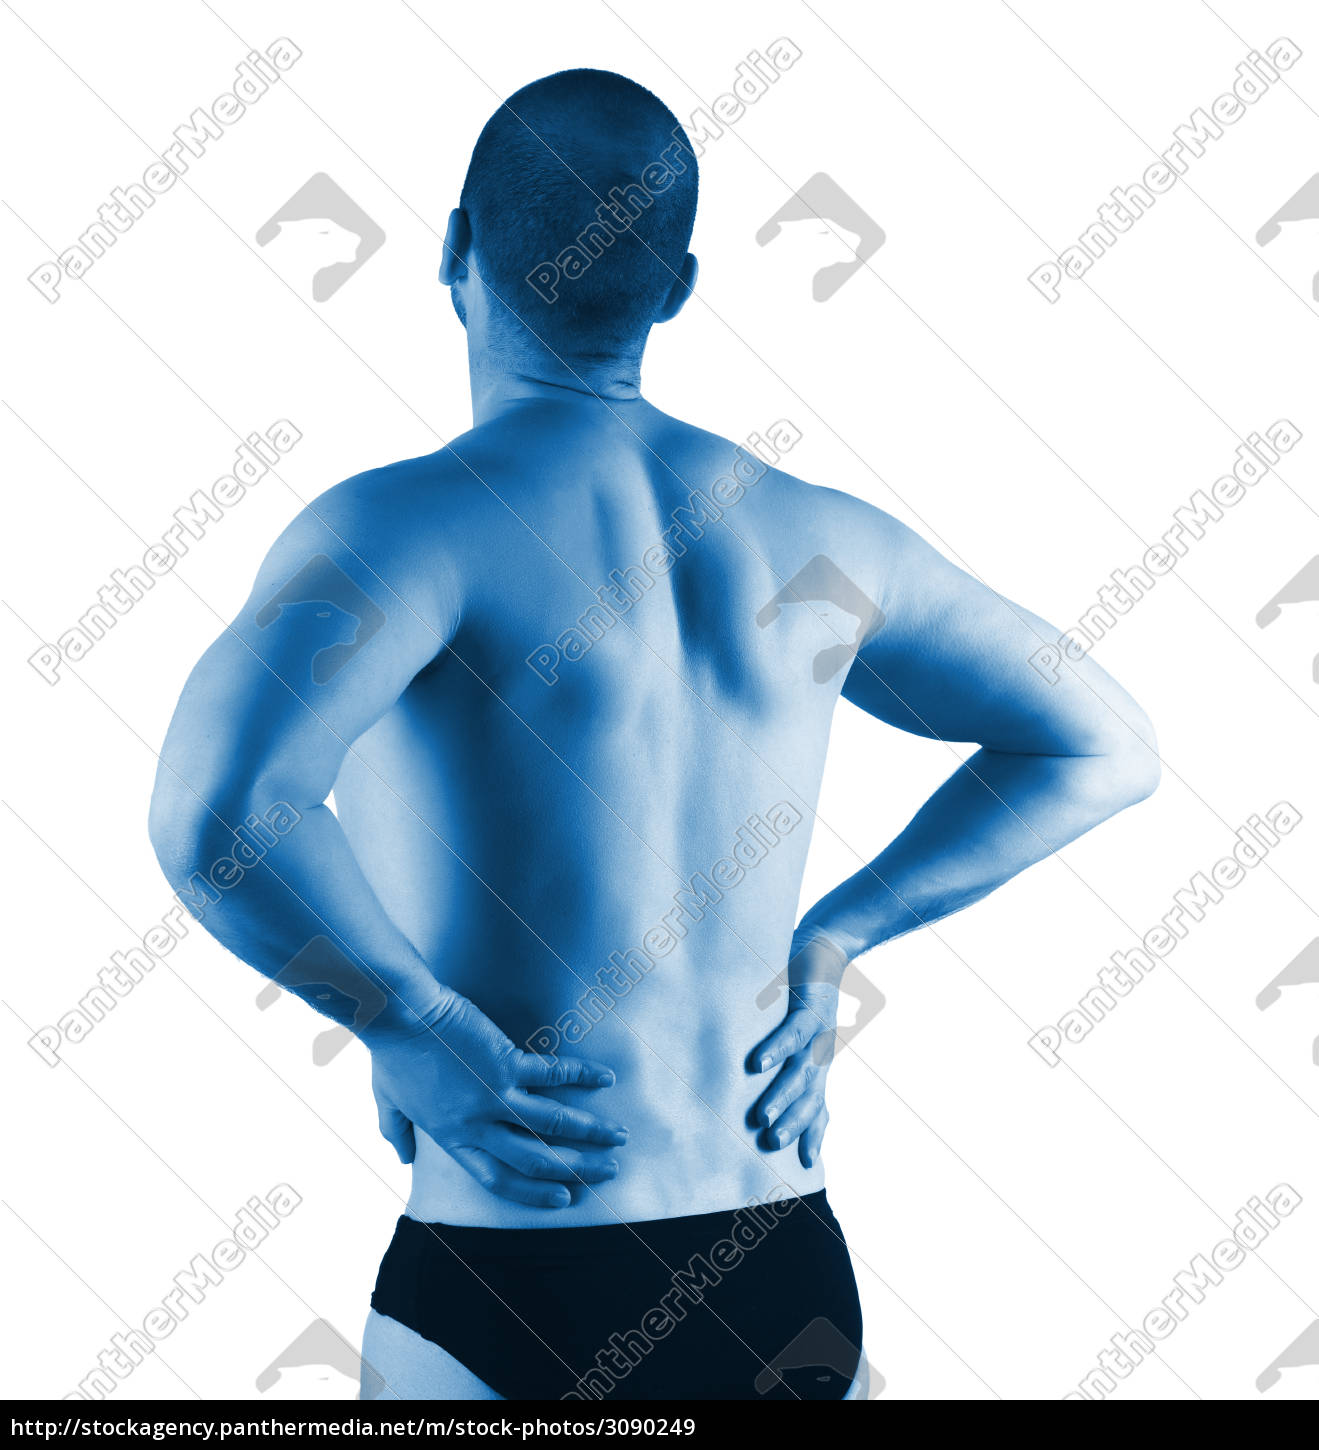 back, pain, and, injury - 3090249